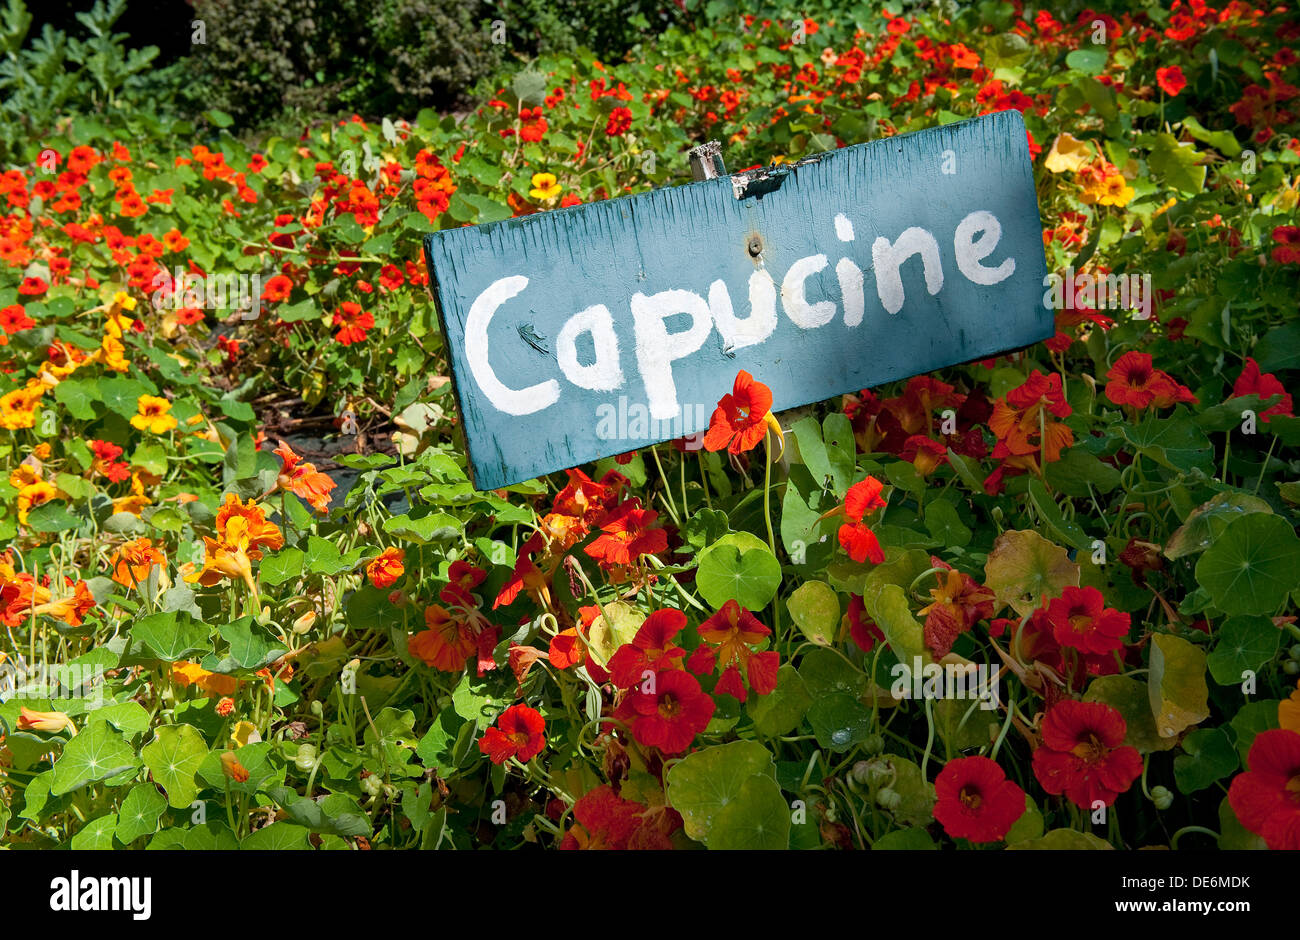 capucine in french kitchen garden, brittany, france - Stock Image